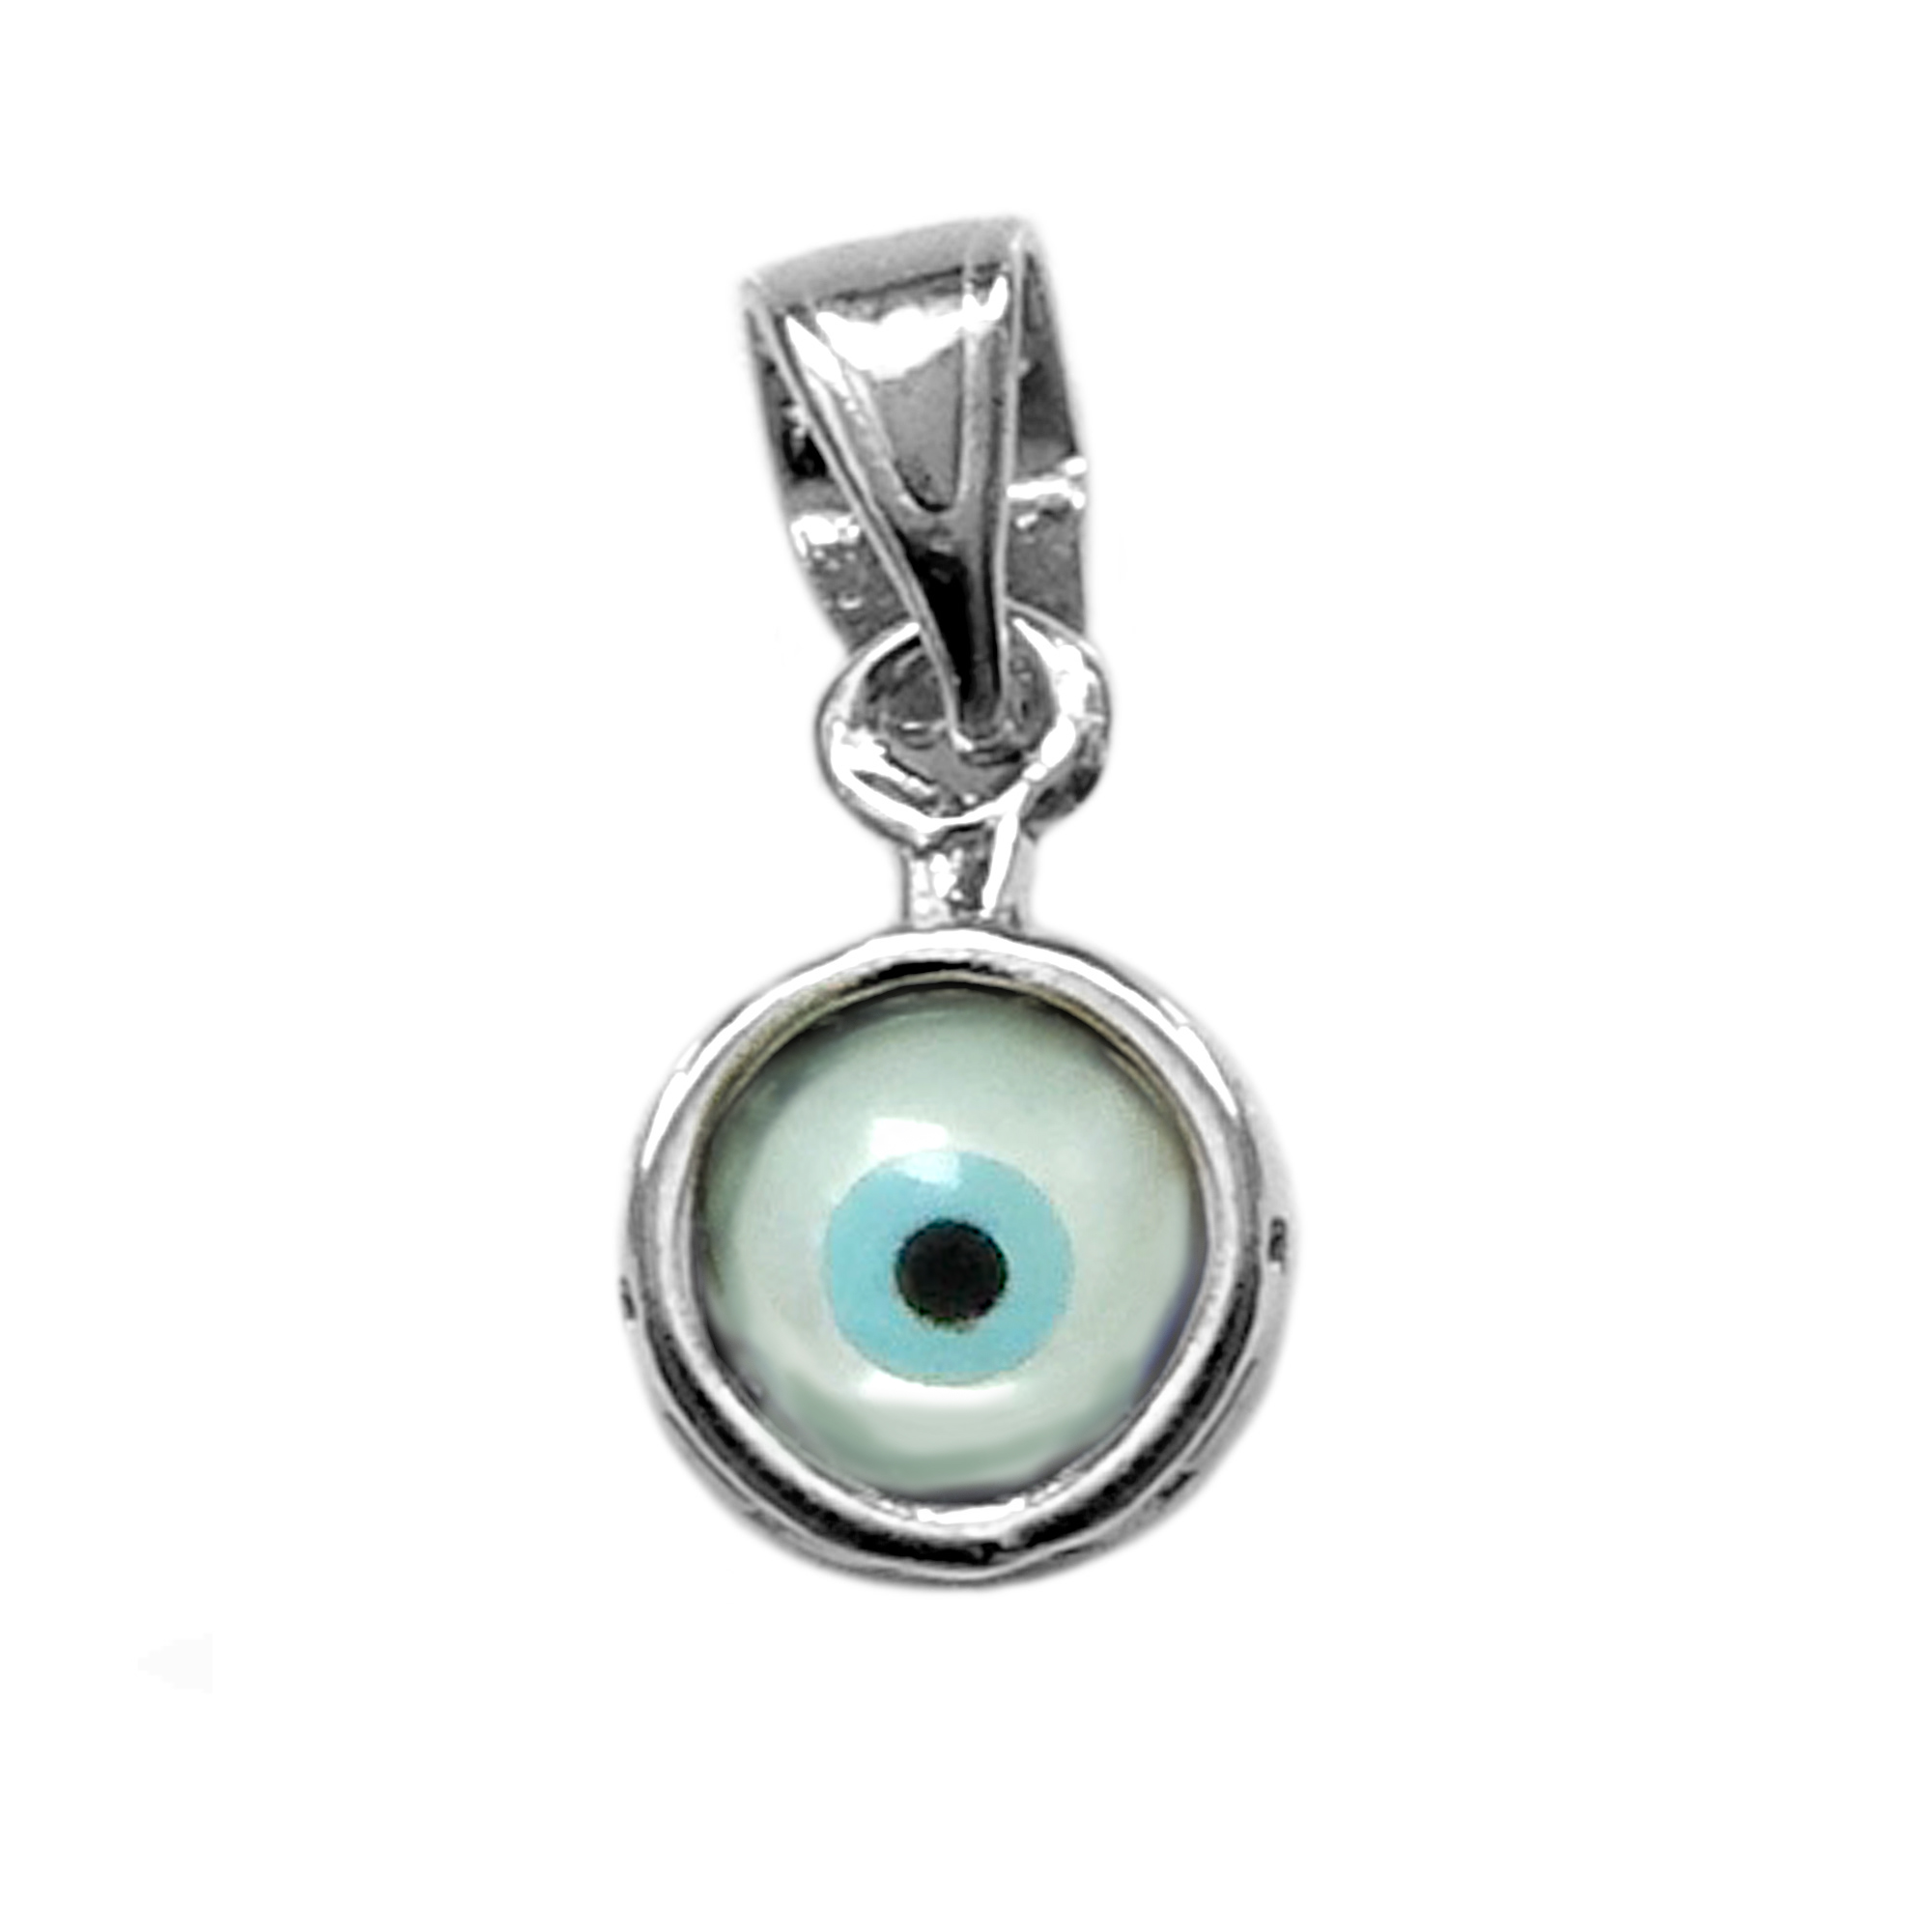 Sterling Silver Greek Meandros Evil Eye Charm Inspired from the of Greek ancient jewelry era, this sterling silver charm features the Greek Key motif, also known as the Meander or eternity symbol, bordering a beautiful double sided glass Evil Eye. Measuring at 7.5 mm diameter, this Greek evil eye is rhodium plated for better tarnish resistance.